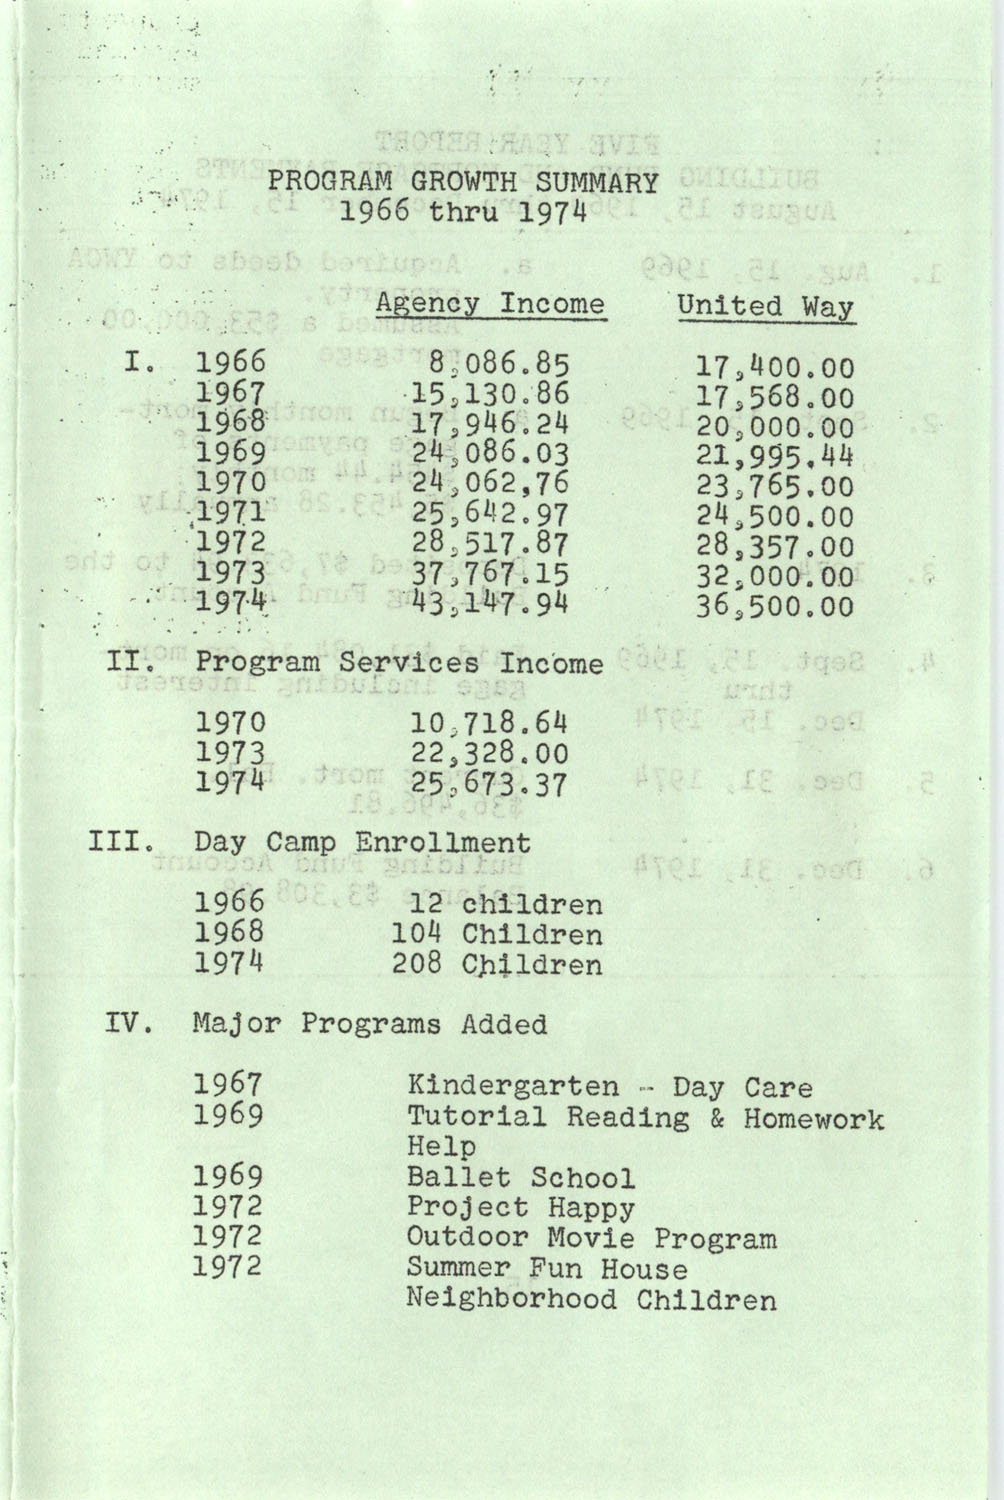 YWCA Spring 1975 Schedule, Page 14